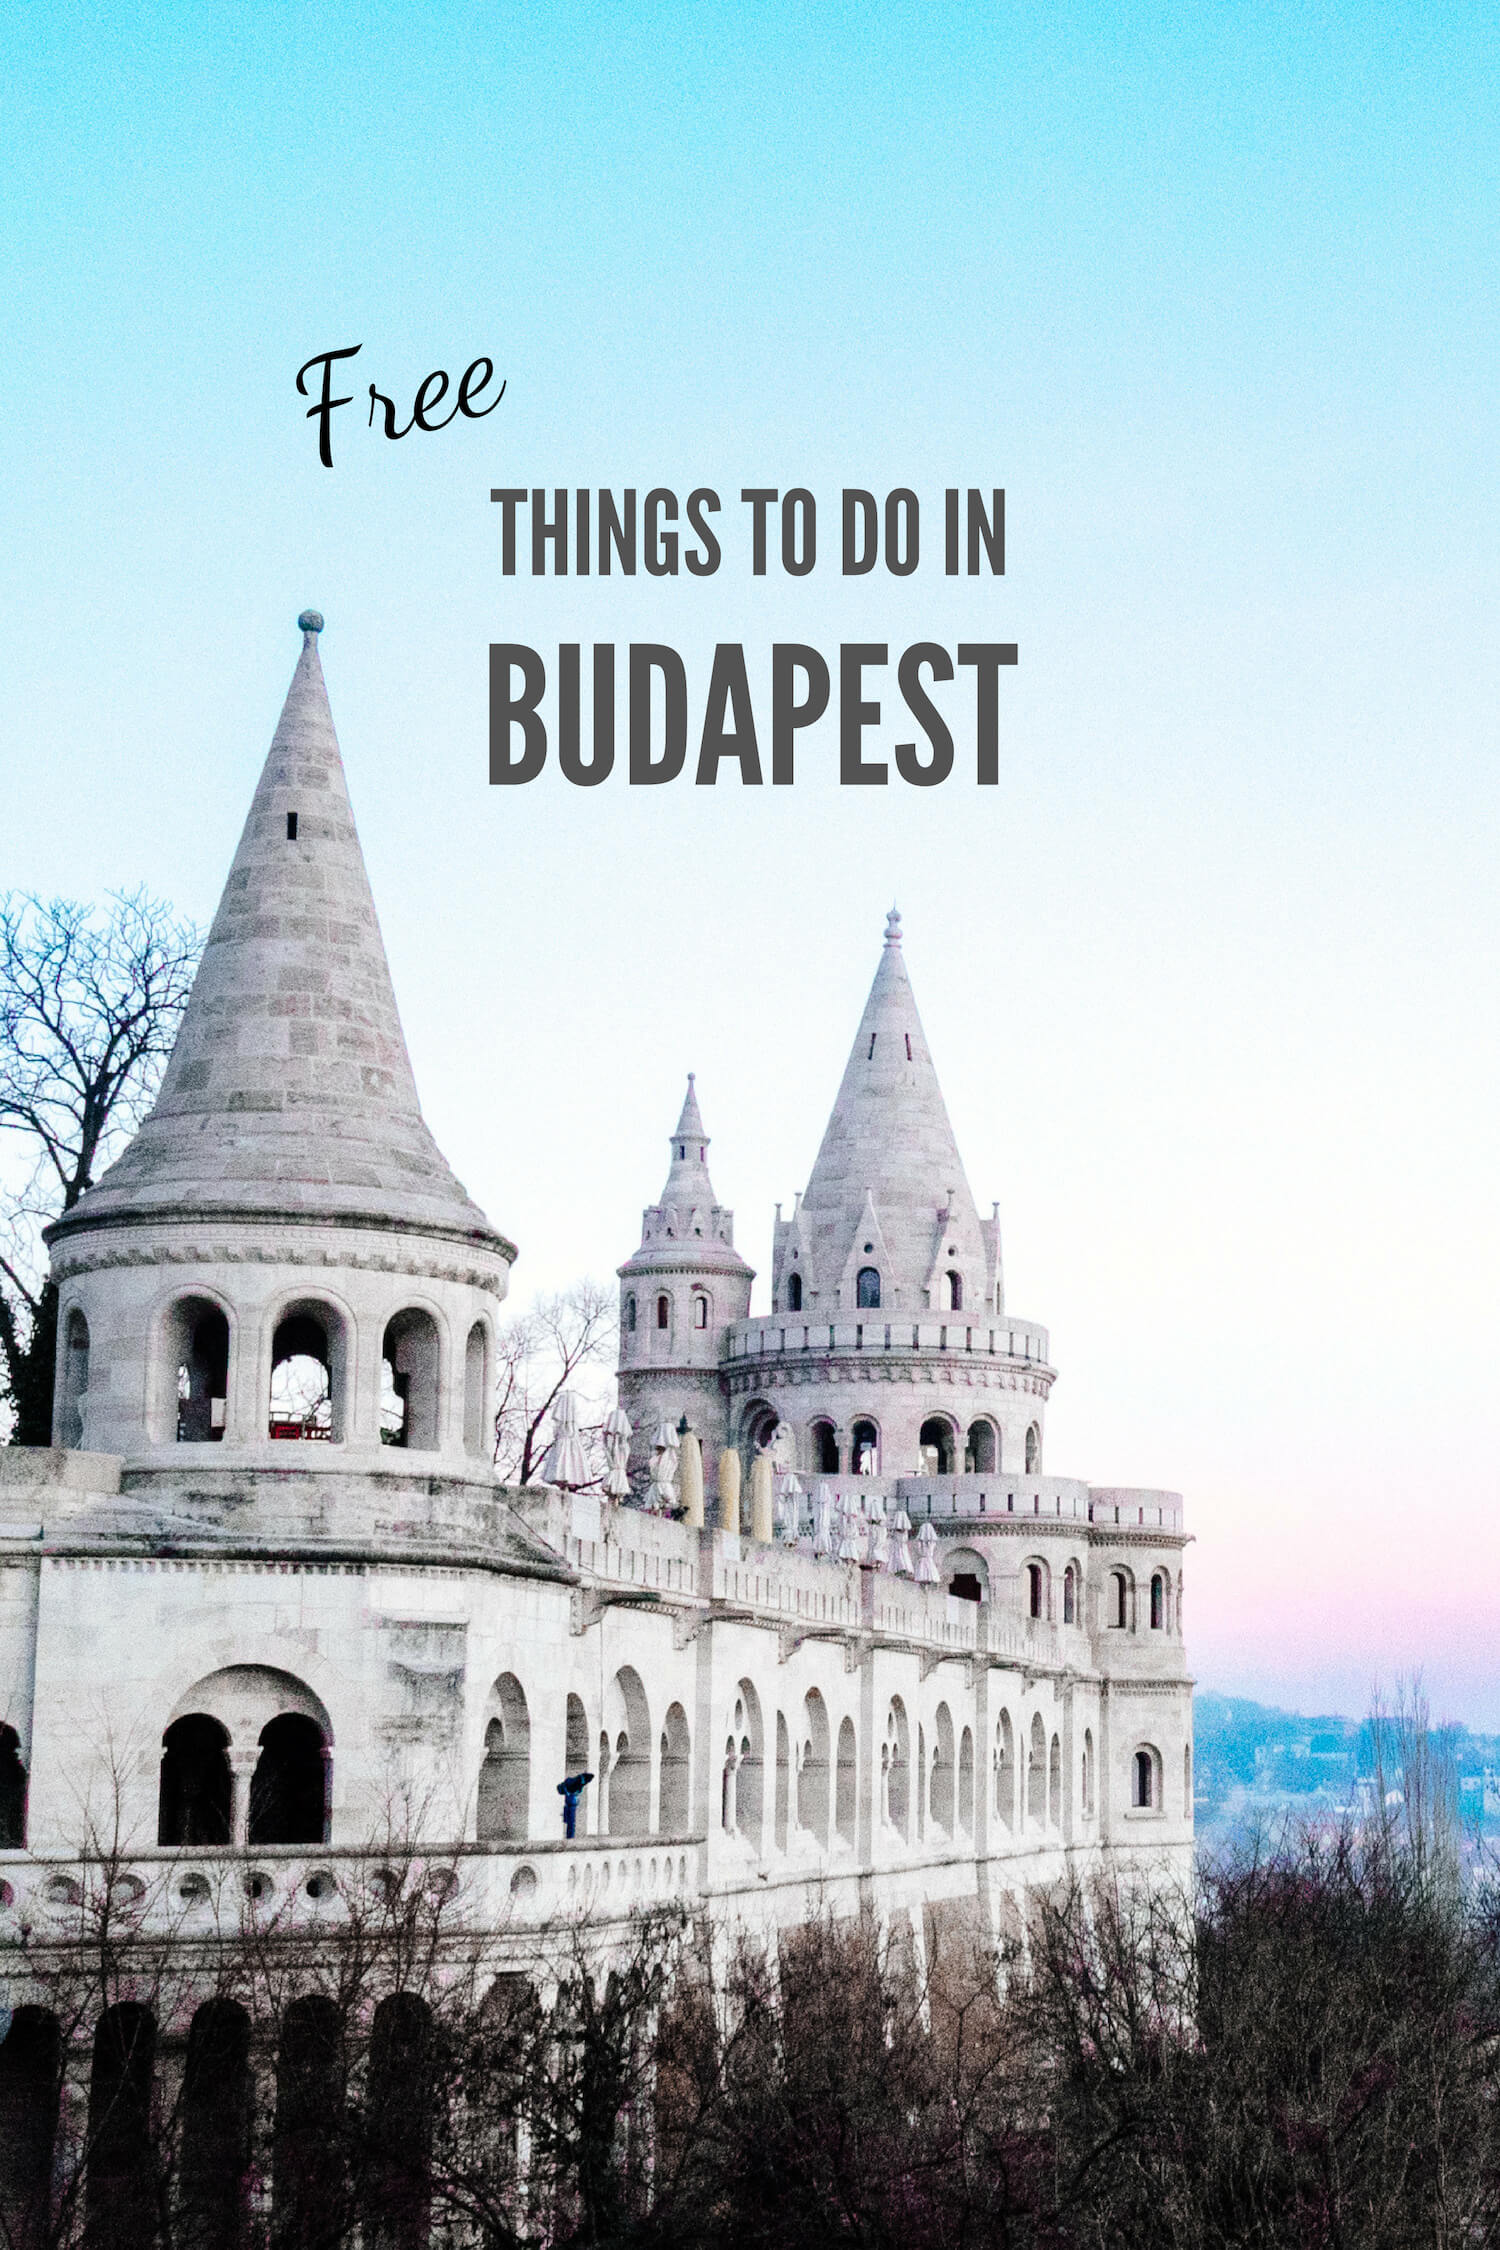 39 Free Things to Do in Budapest